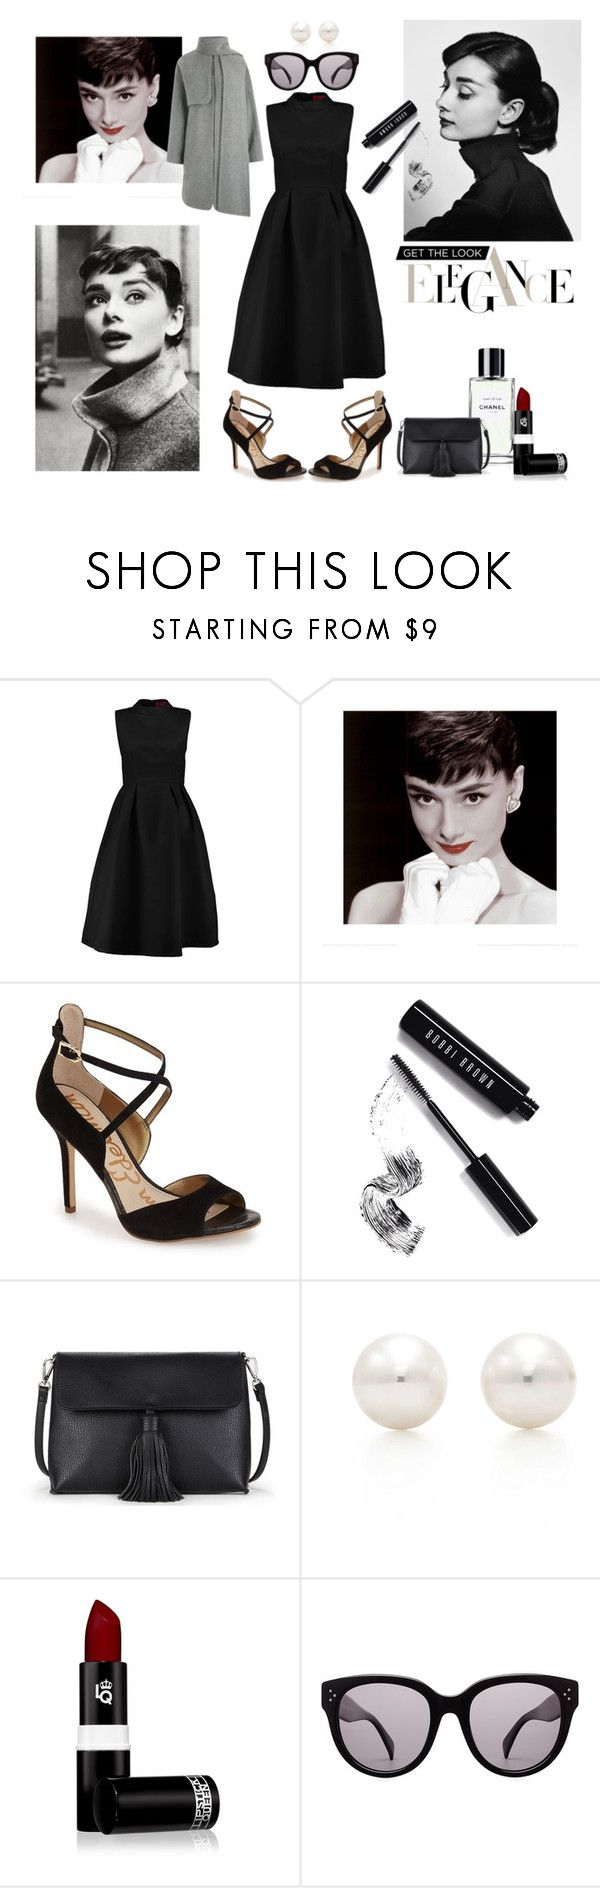 Audrey of elegance by paisleyvelvetandlace on Polyvore featuring Boohoo, Warehouse, Sam Edelman, Sole Society, Tiffany & Co., CÉLINE, Lipstick Queen, Bobbi Brown Cosmetics and Prada